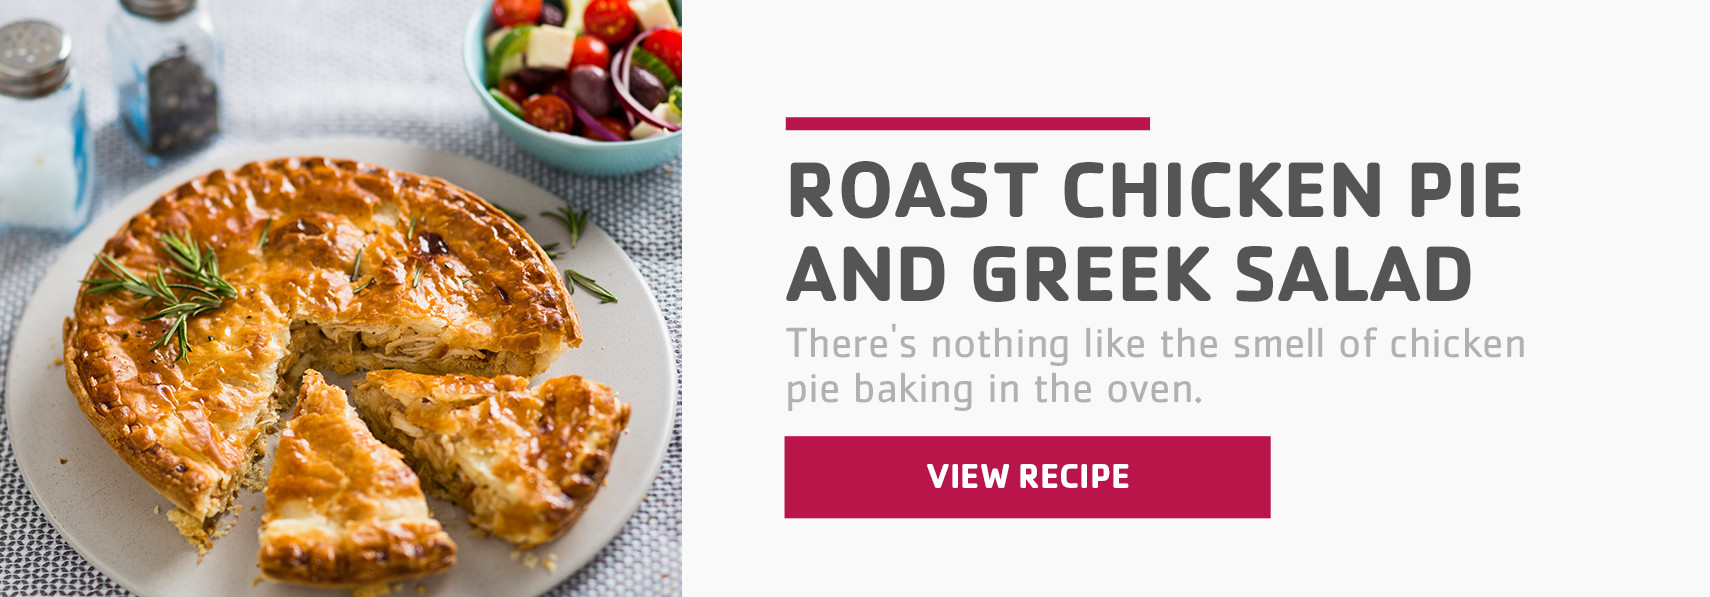 03_Lunchbox-Roast_chicken_pie.jpg